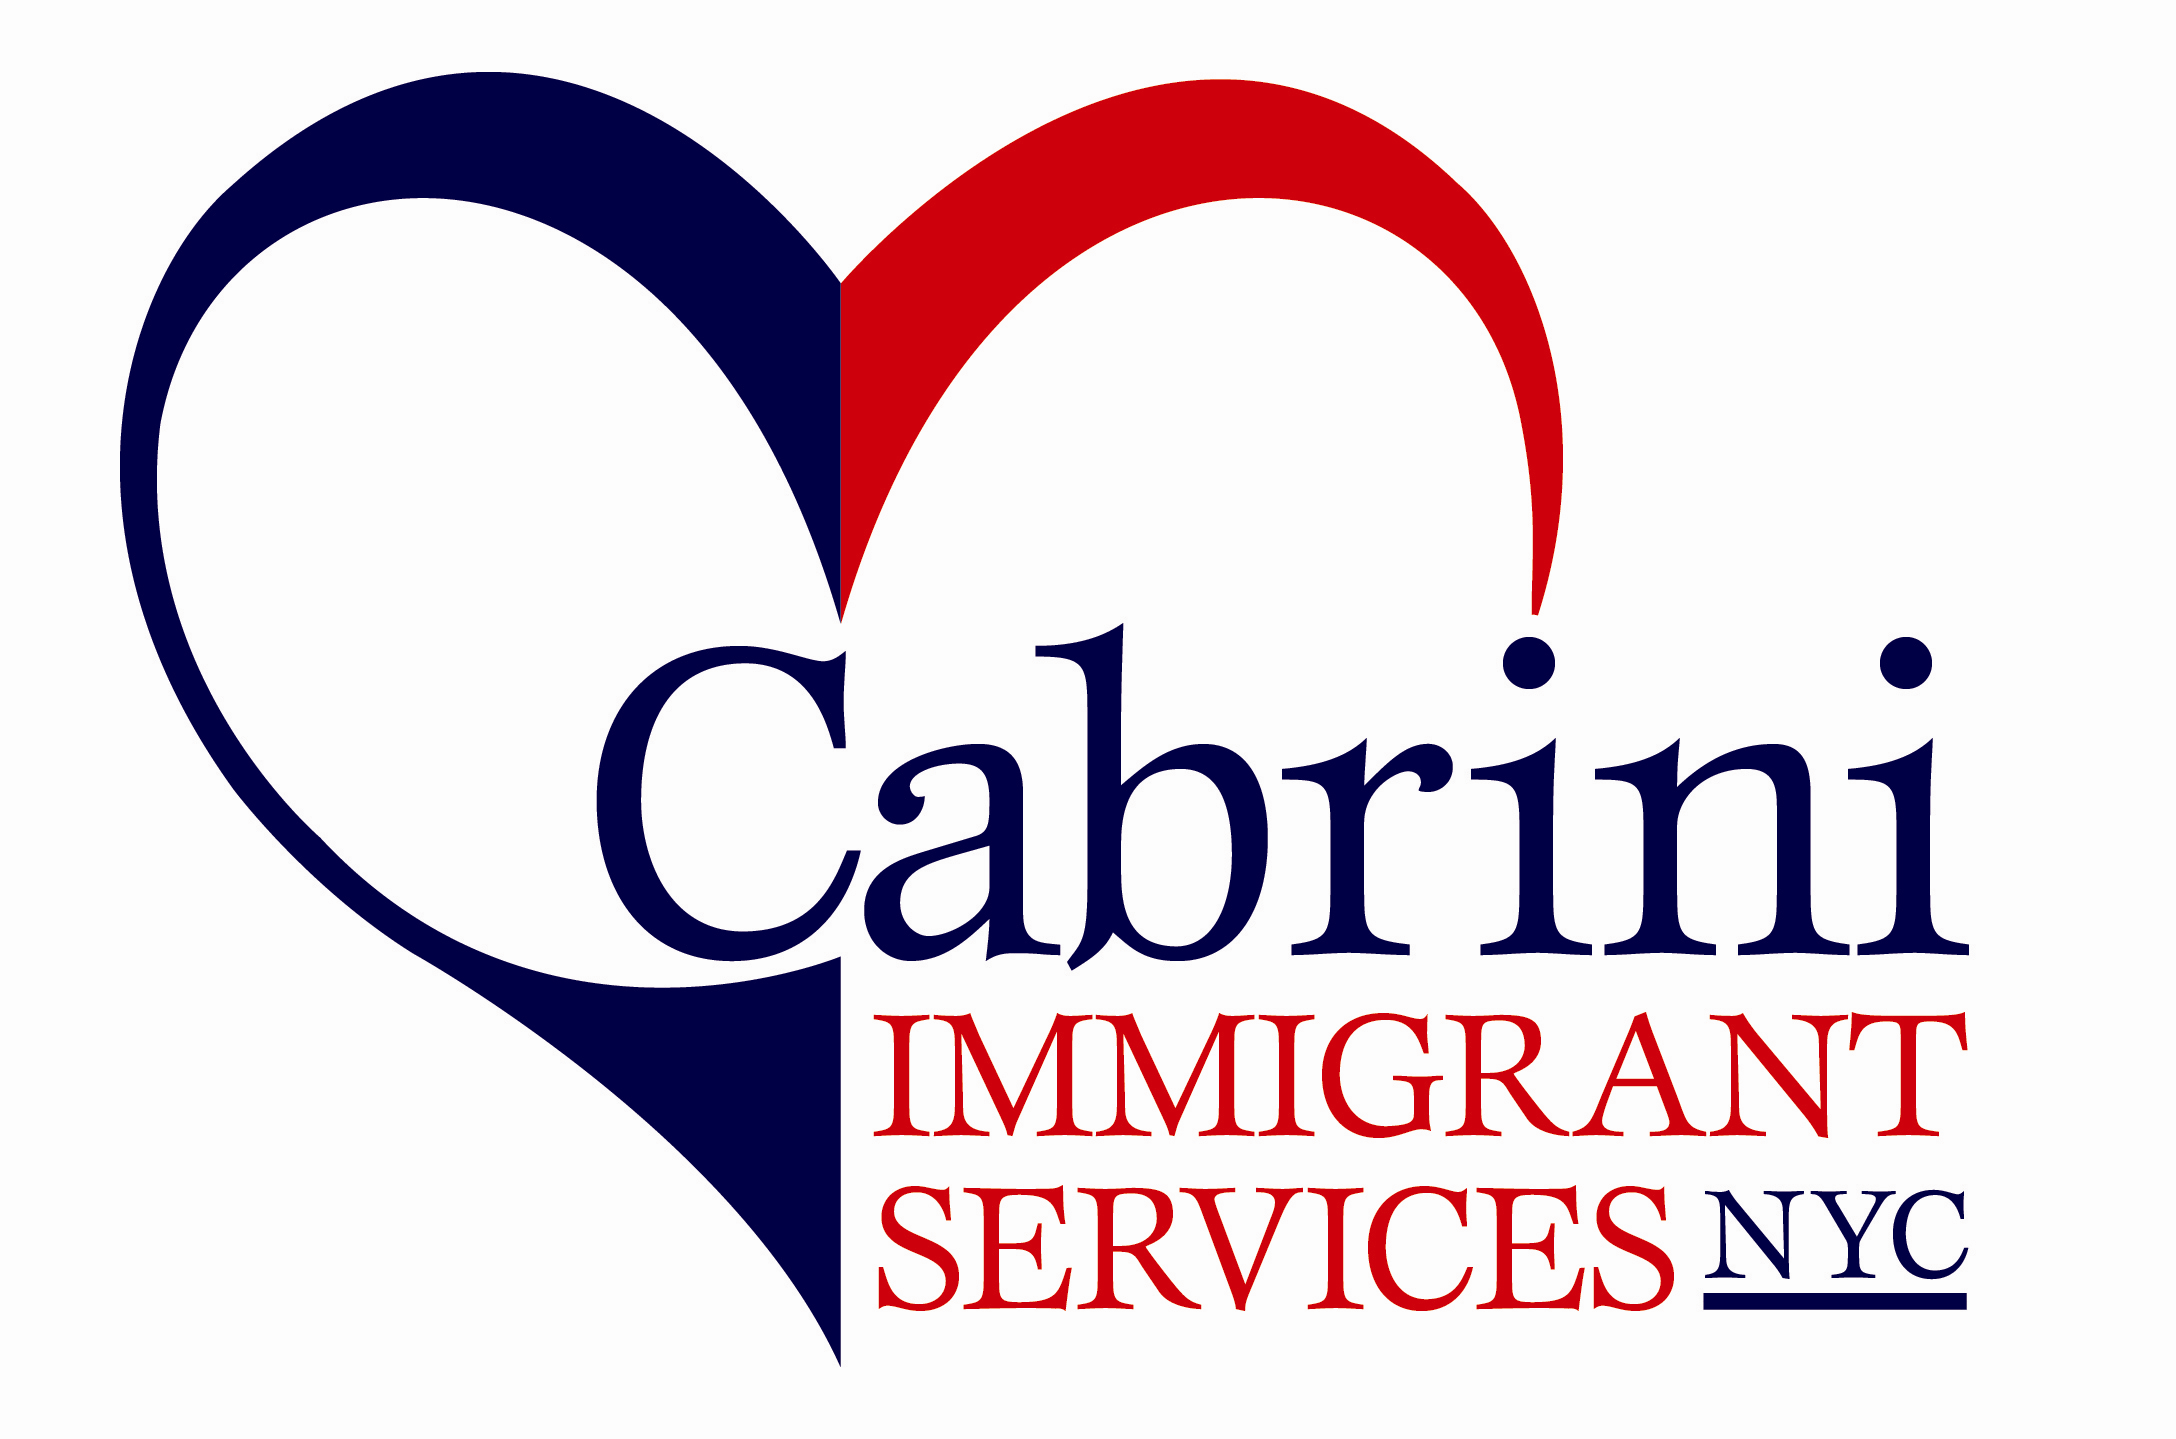 Cabrini Immigrant Services of NYC